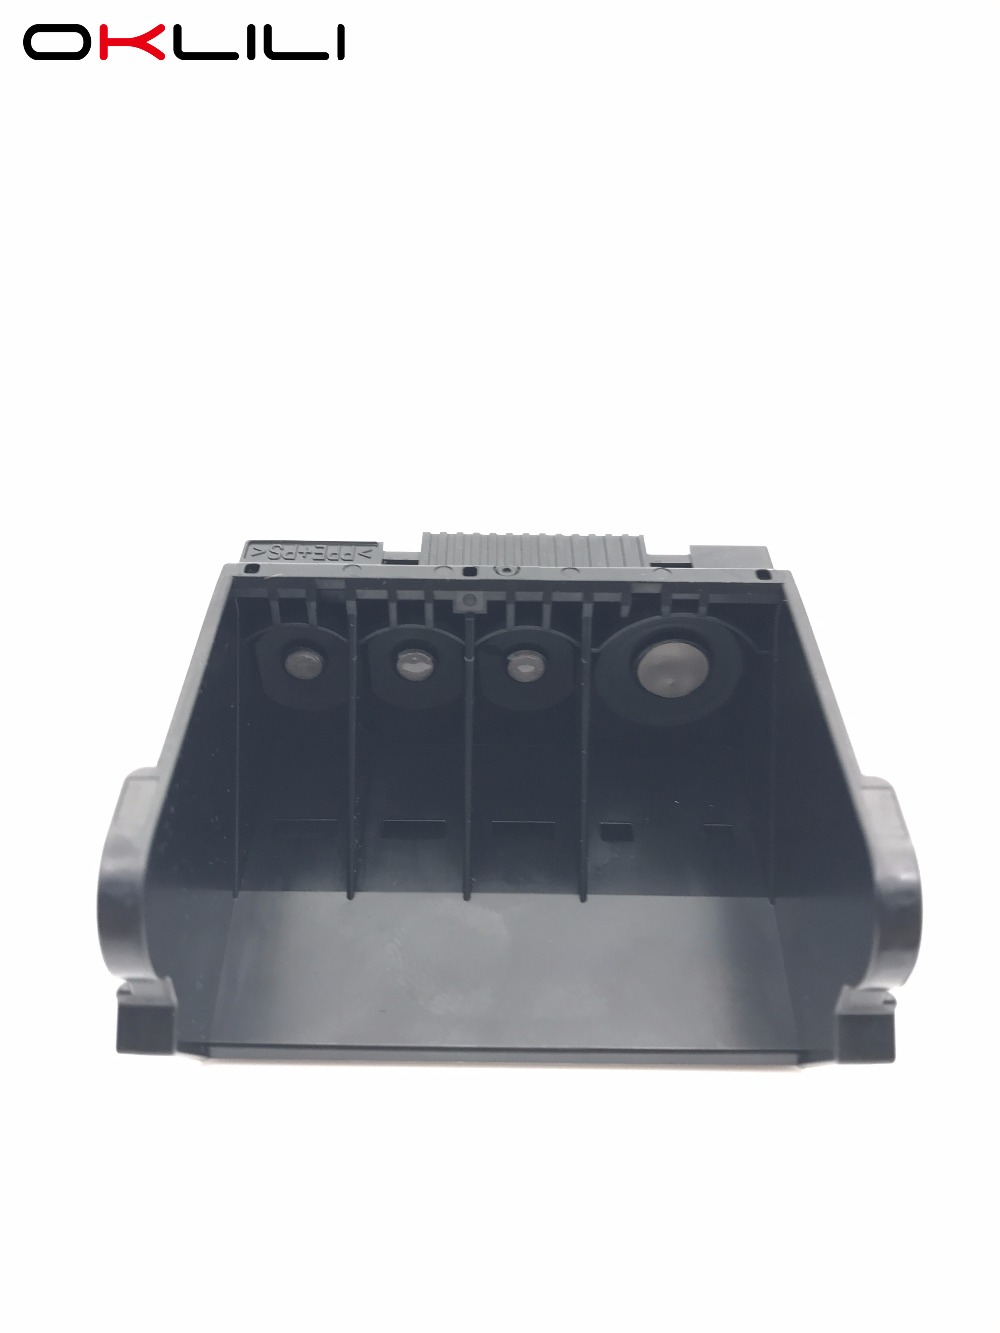 OKLILI ORIGINAL QY6-0070 QY6-0070-000 Printhead Print Head Printer Head for Canon MP510 MP520 MX700 iP3300 iP3500 high quality original print head qy6 0057 printhead compatible for canon ip5000 ip5000r printer head